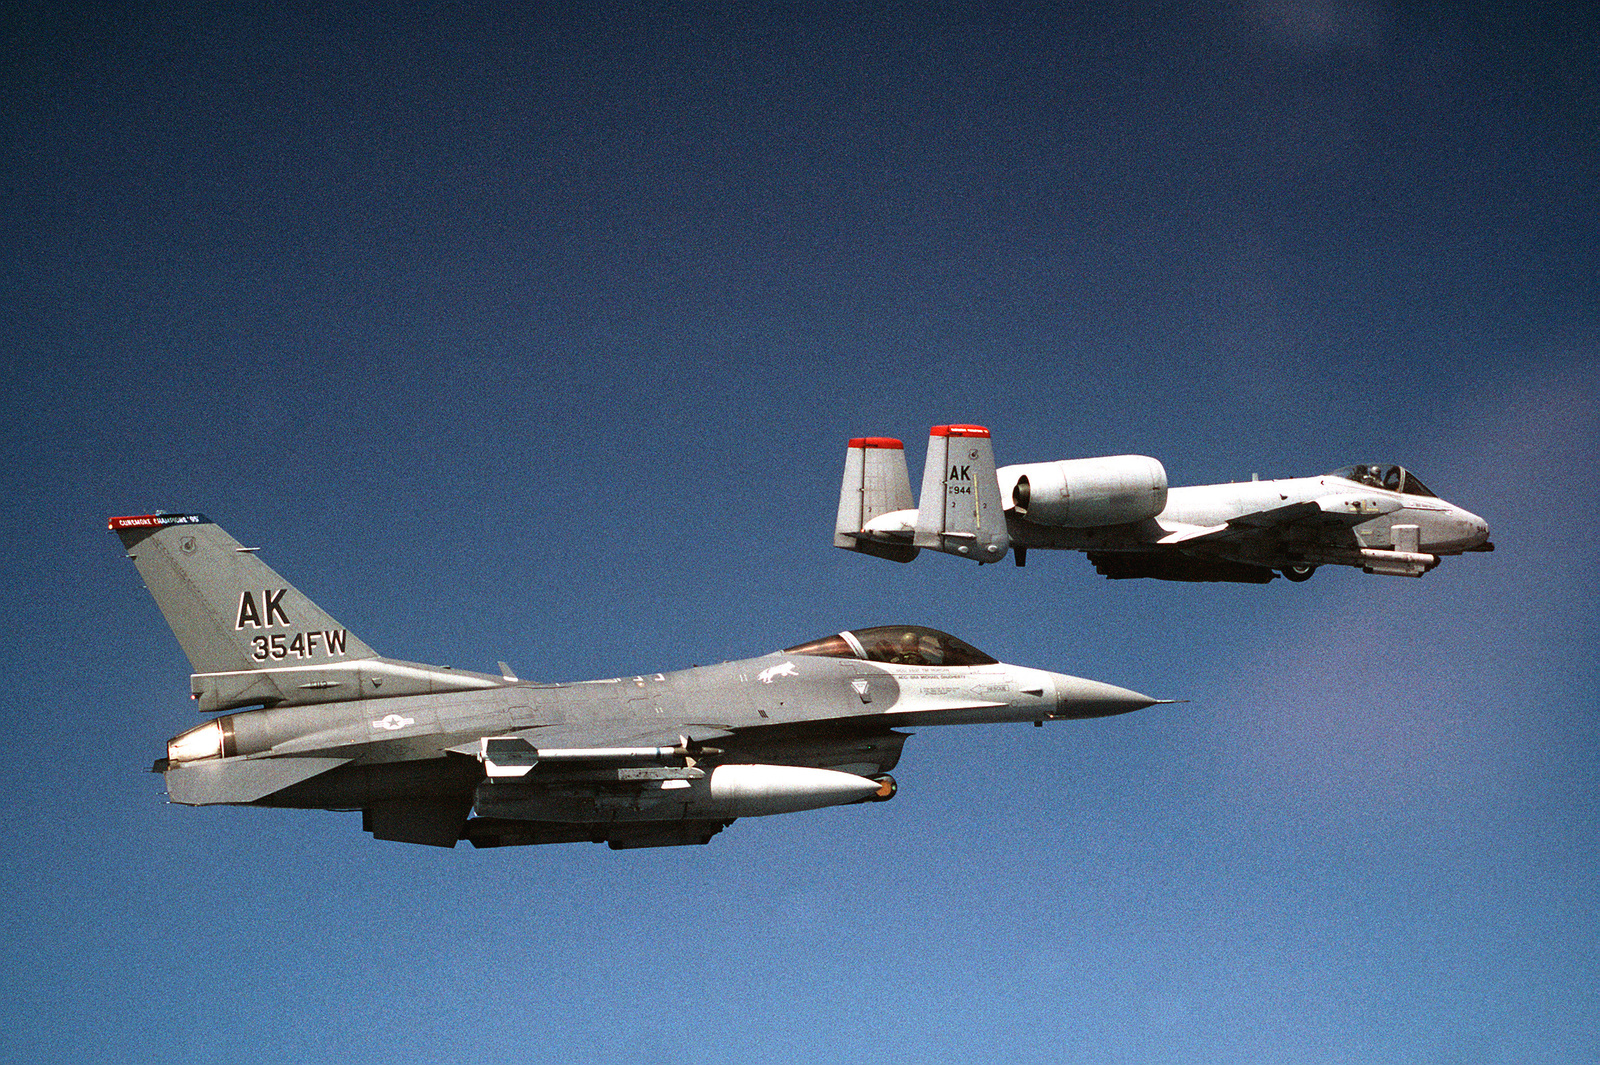 An F-16 Falcon from the 18th Fighter Squadron and a A-10 Warthog from the 355th Fighter Squadron, both from Eielson Air Force Base, Alaska, fly over the coast at the Kunsan Bomb Range a bombing exercise. The aircraft are returning from a live ordnance bomb drop. The exercise was to use up some of the old Vietnam Era ordnance that was still in the Air Force inventory